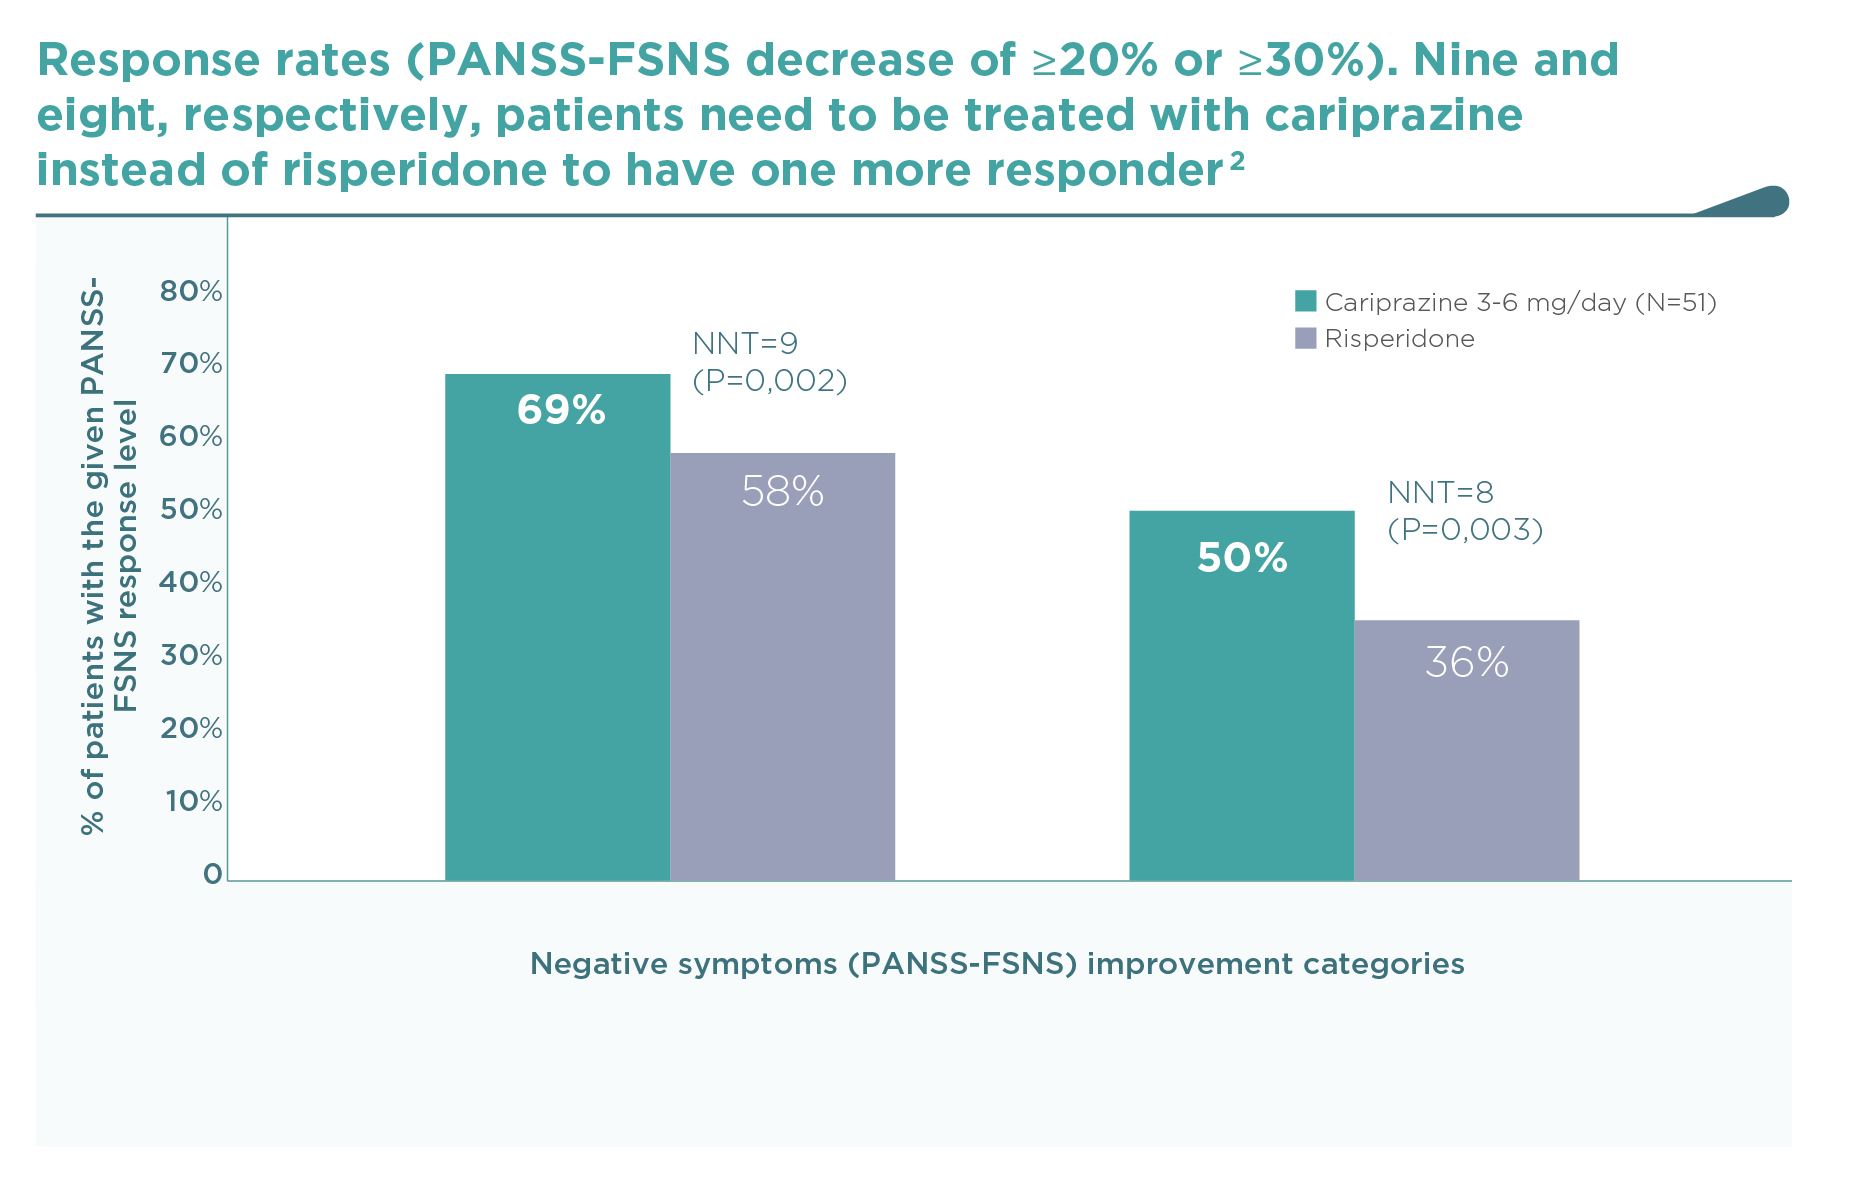 Cariprazine Negative symptom study: Responder rates (PANSS-FSNS decrease by 20 or 30%) during 26 weeks of cariprazine vs risperidone treatments